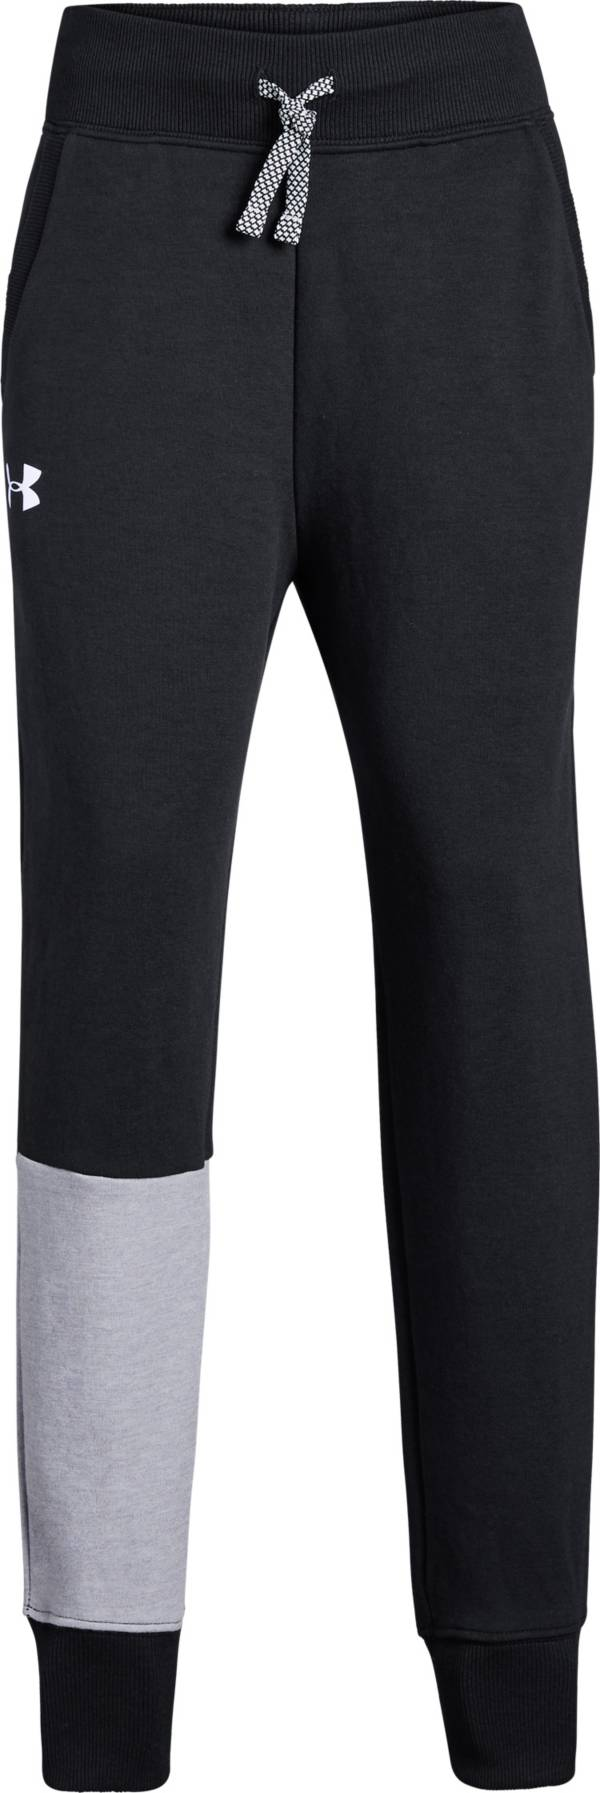 Under Armour Girls' Double Knit Jogger Pants product image